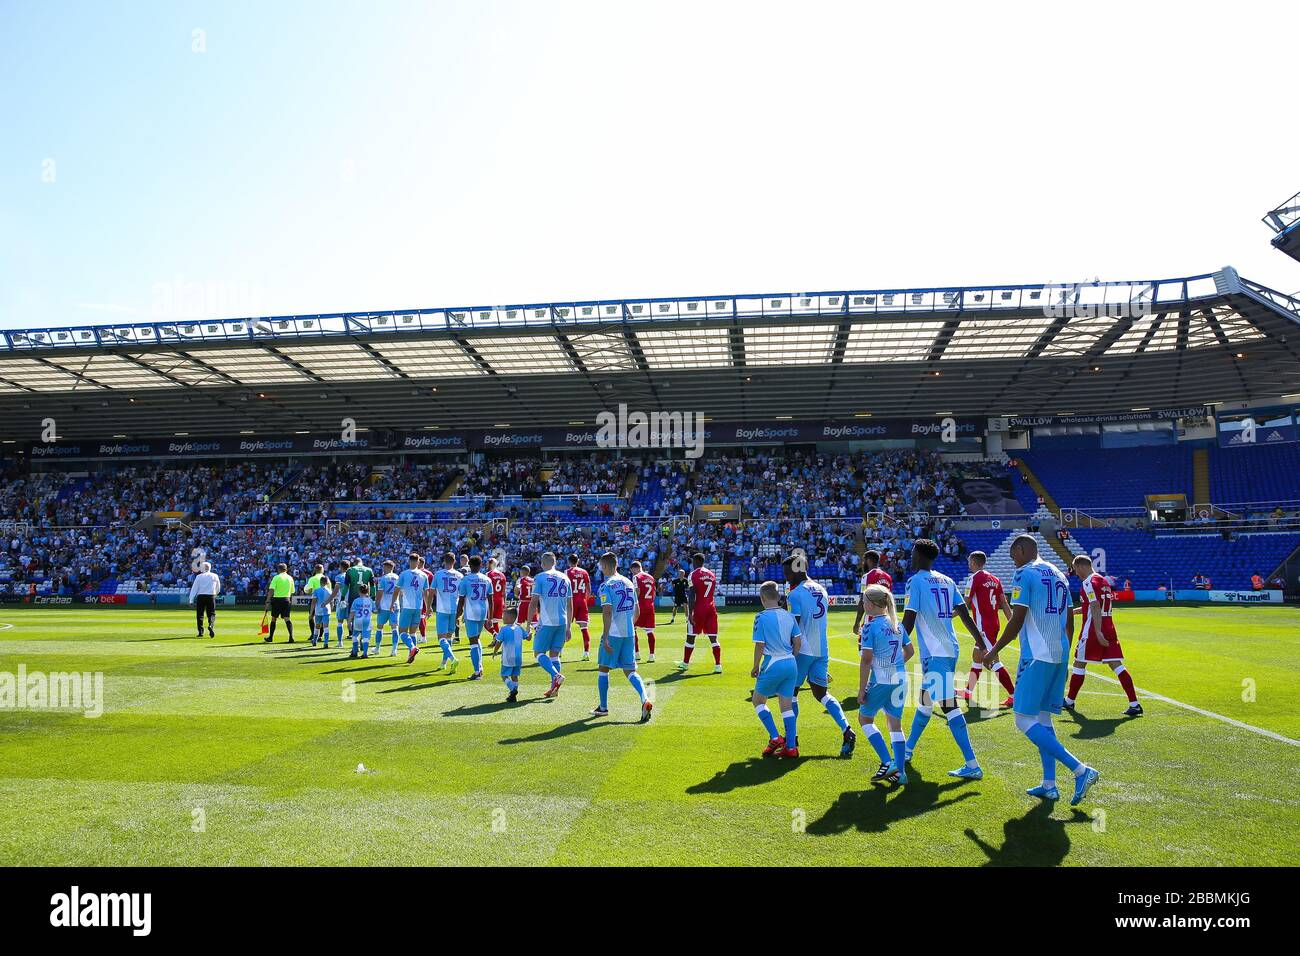 Football Mascots High Resolution Stock Photography And Images Page 2 Alamy